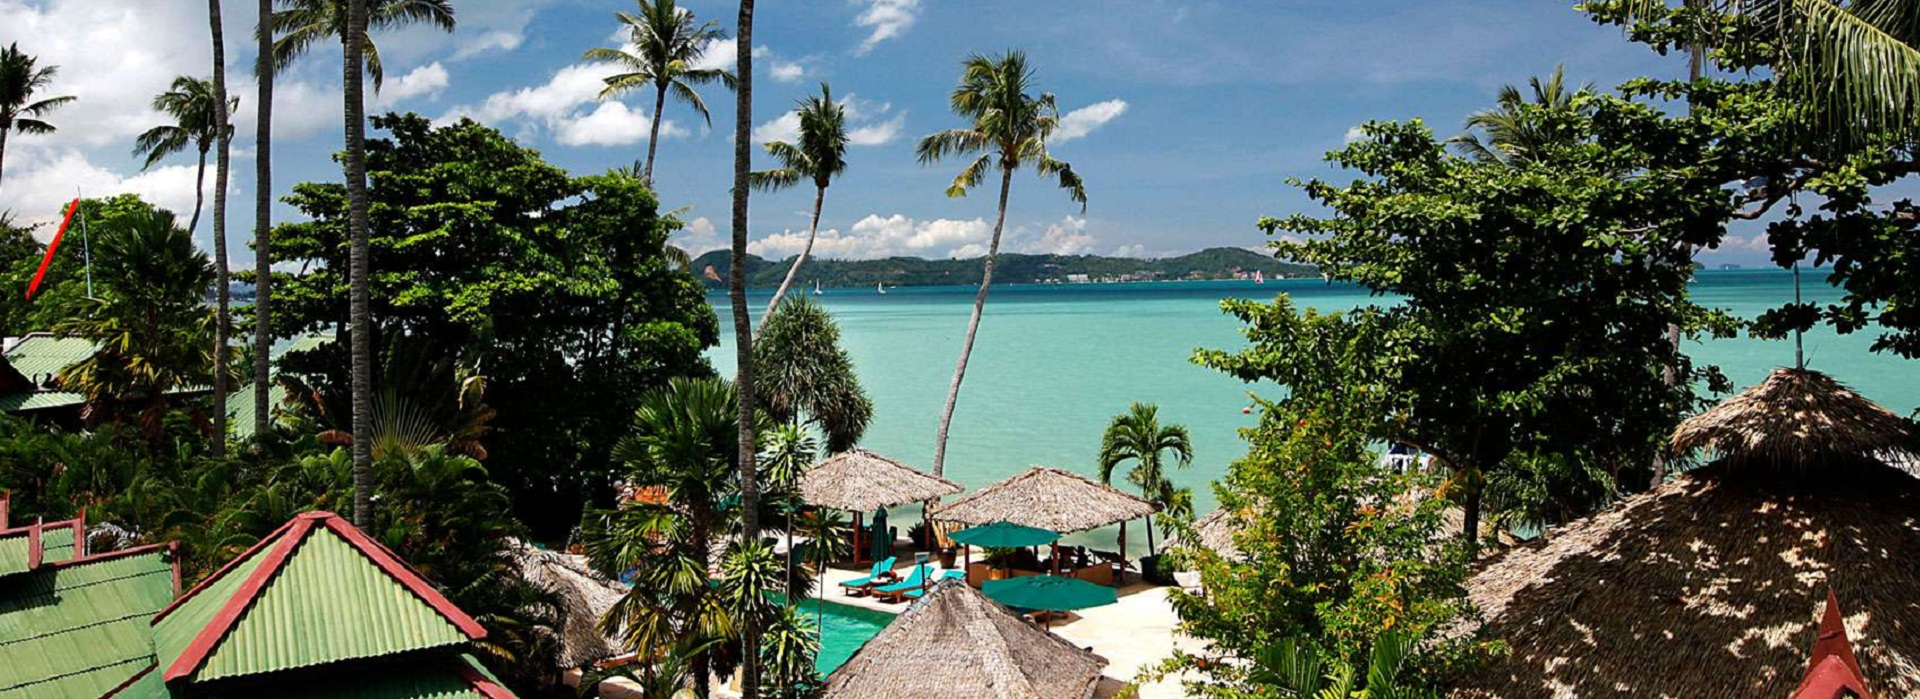 Activities in Rawai Phuket